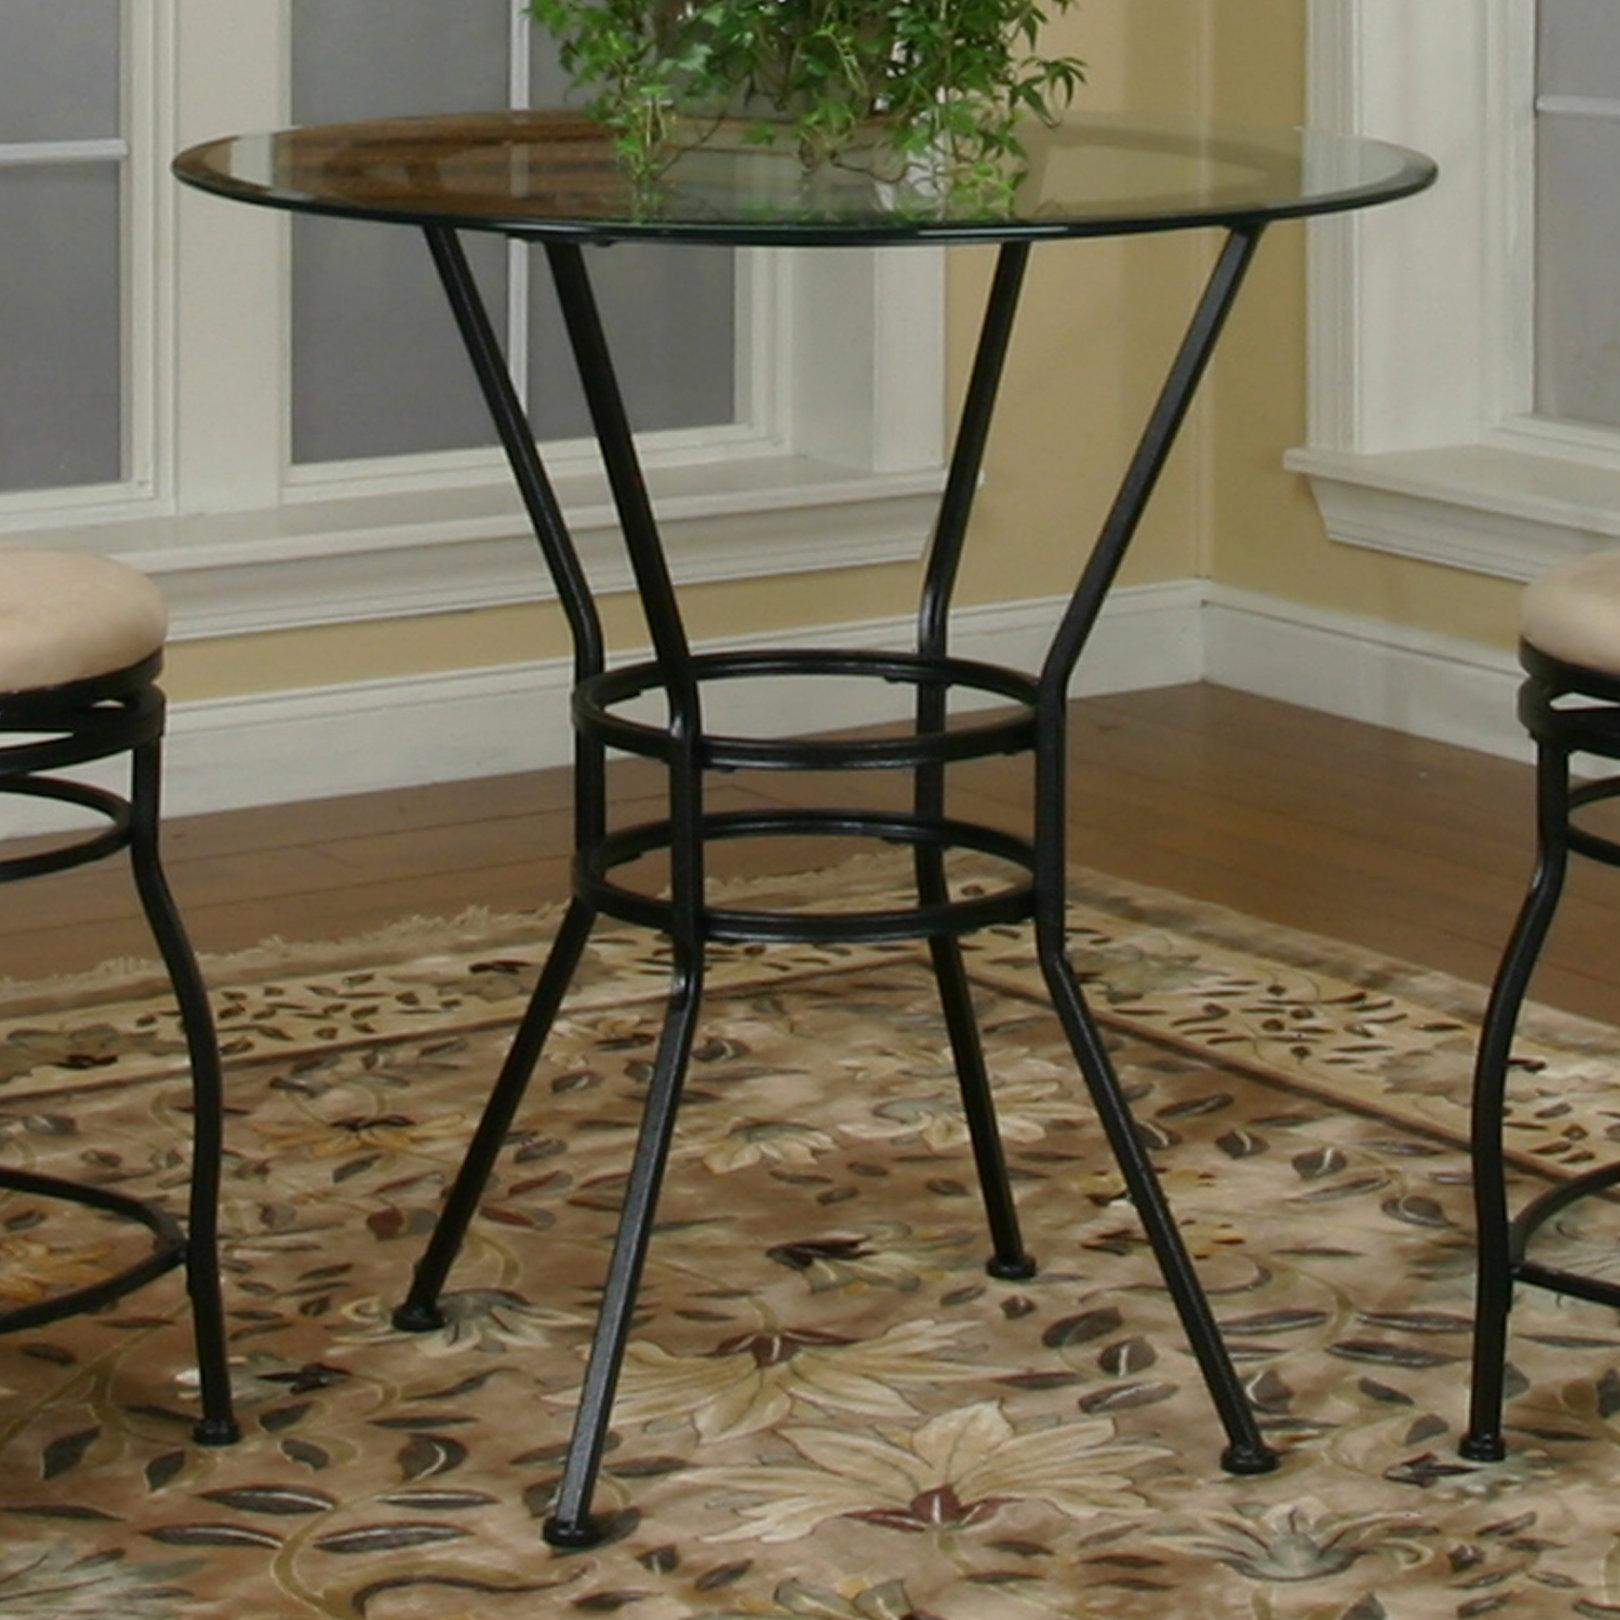 Superior Glass Pub Table Part - 2: Round Glass Pub Table W/ Textured Black Pedestal Base